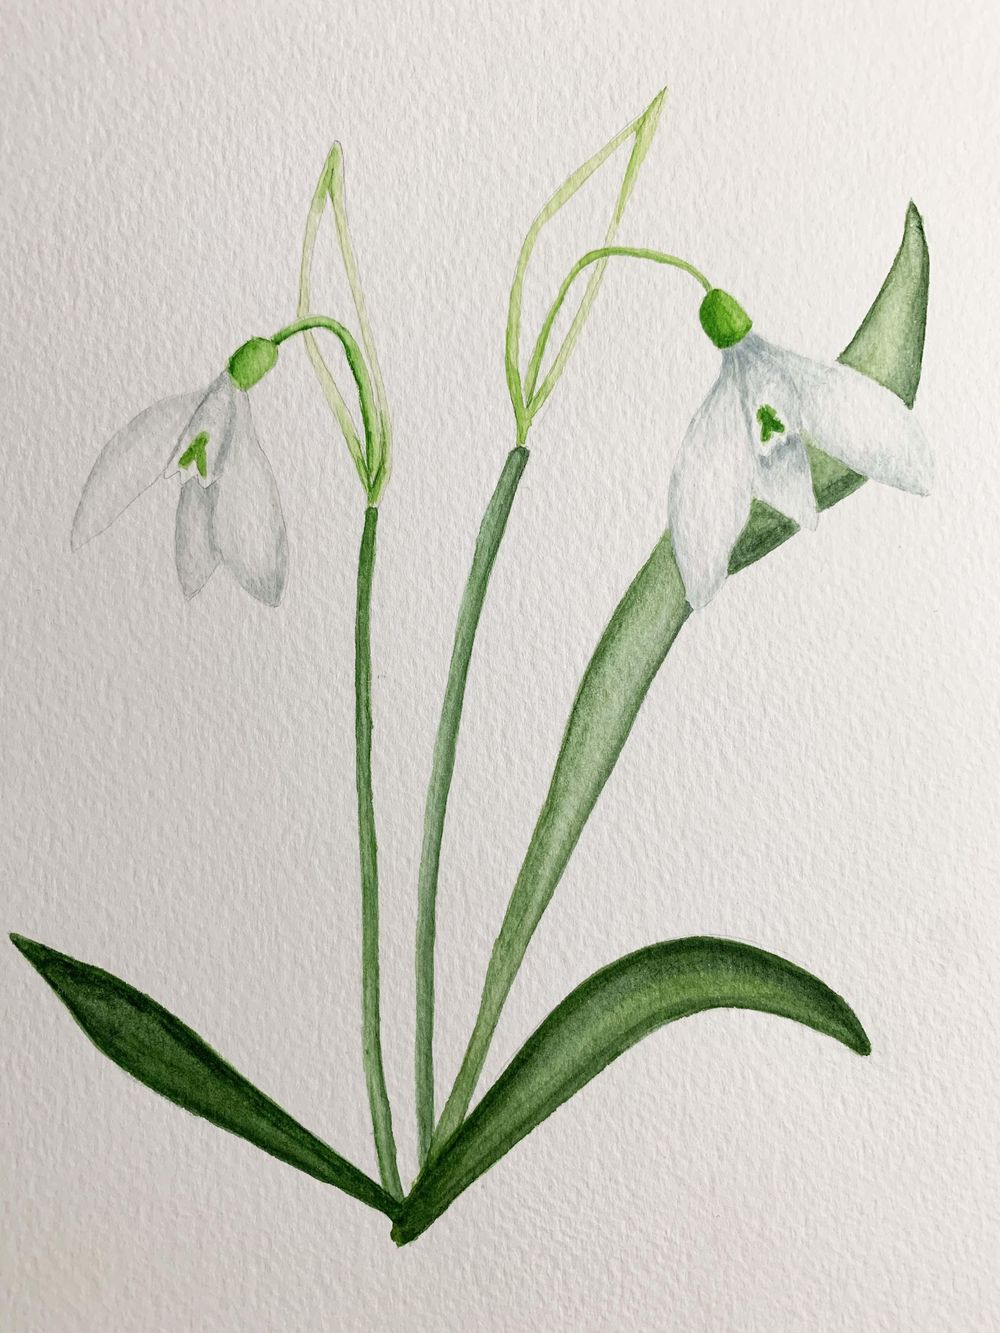 Snowdrops & Anemone - image 2 - student project